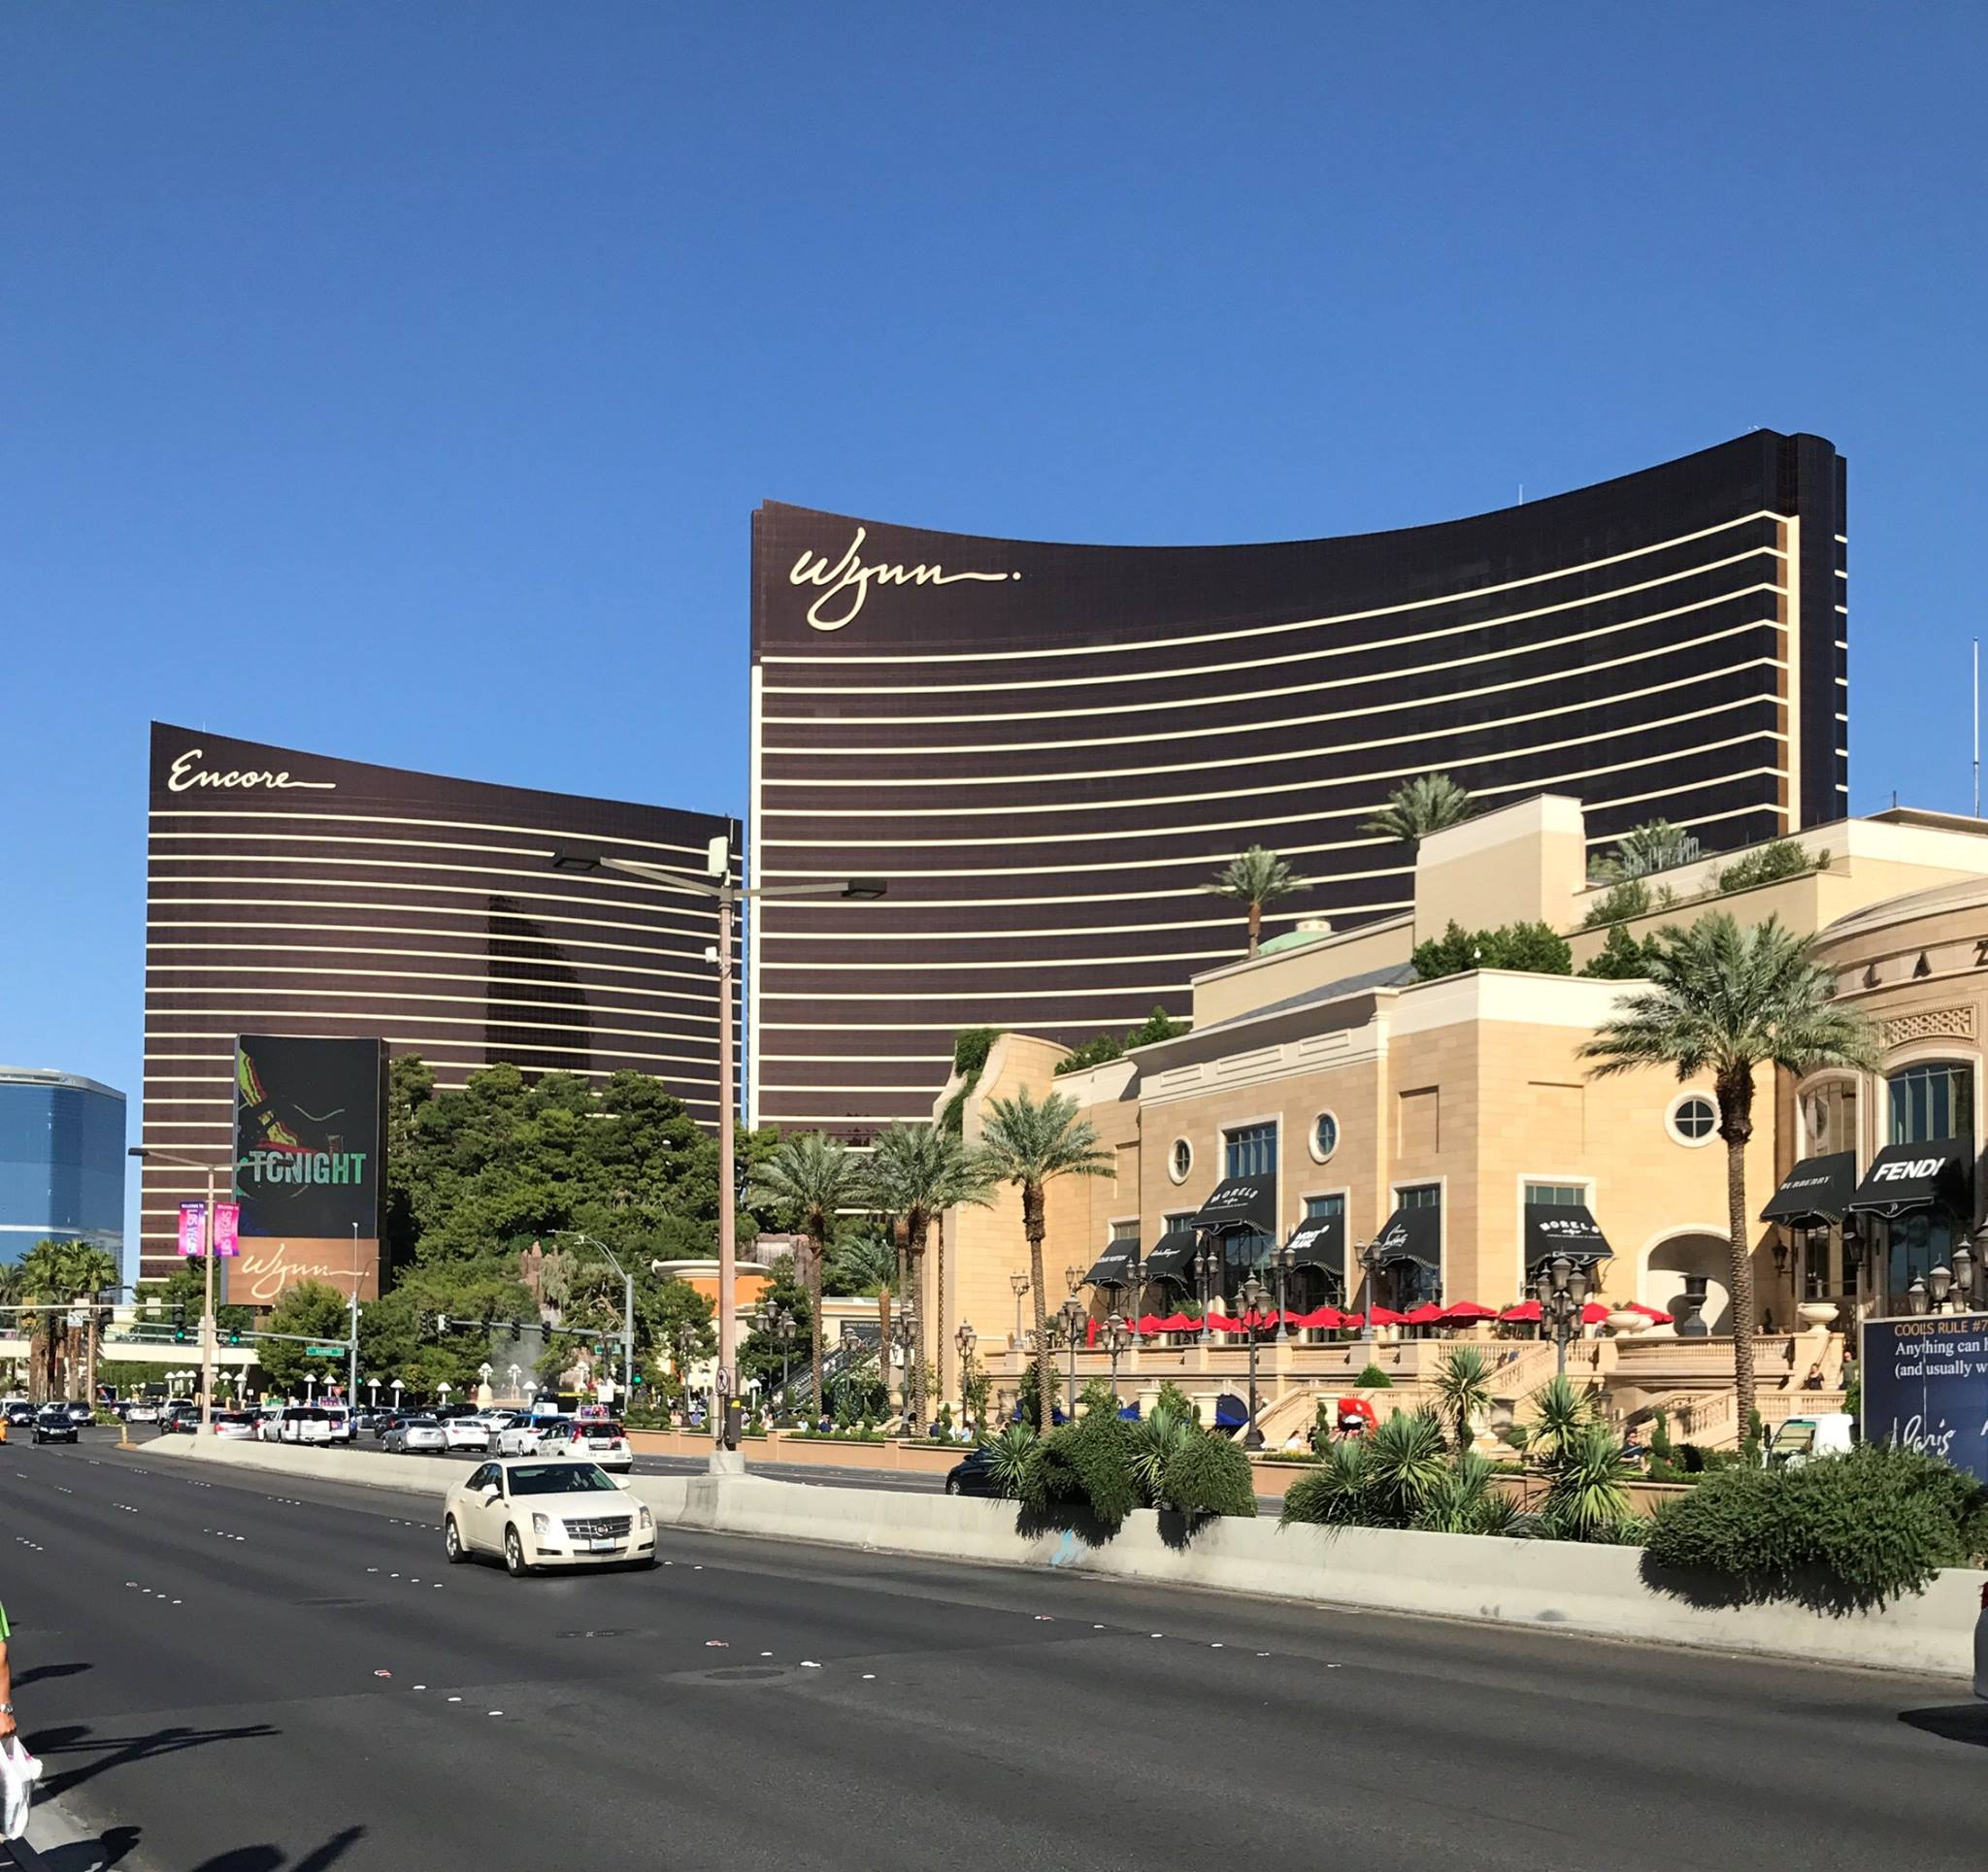 Picture of Wynn and Encore from the Las Vegas Strip